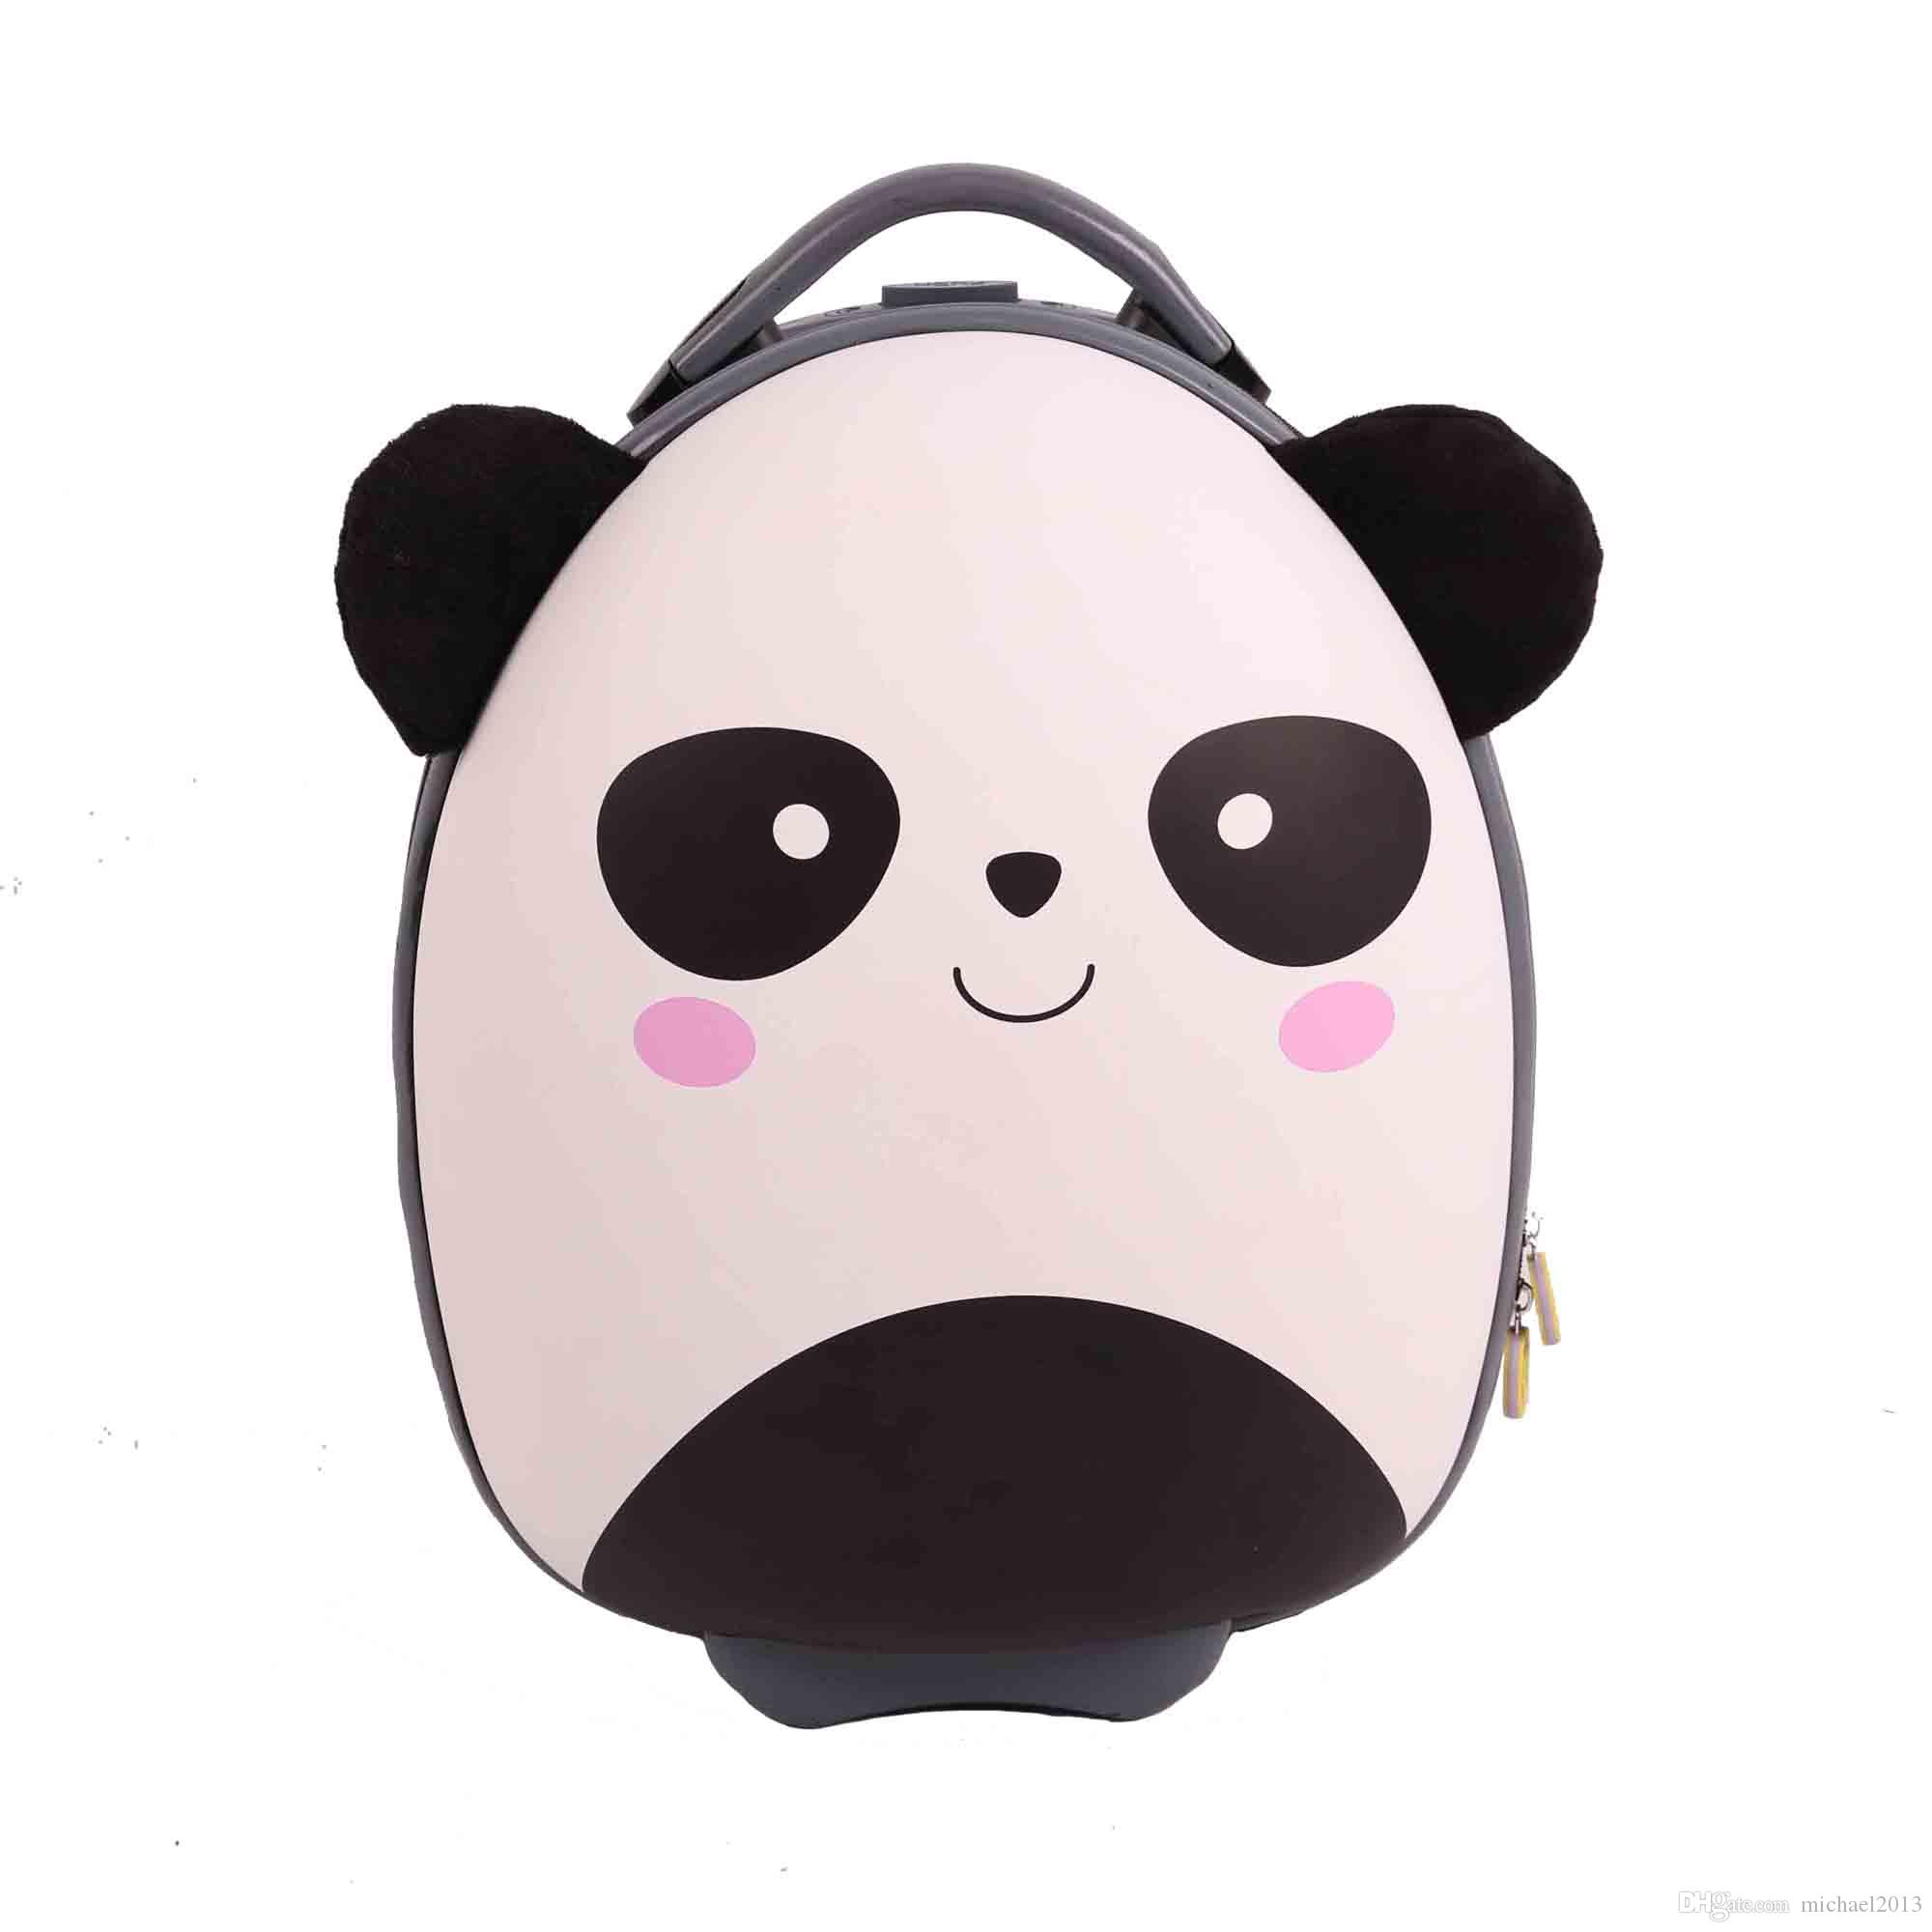 Very Cute Cartoon Children School Bags BB BAG Brand Wheeled Bags Animal Pattern EVA Children's Trolley Cabin Bag Fun Design Travel Luggage